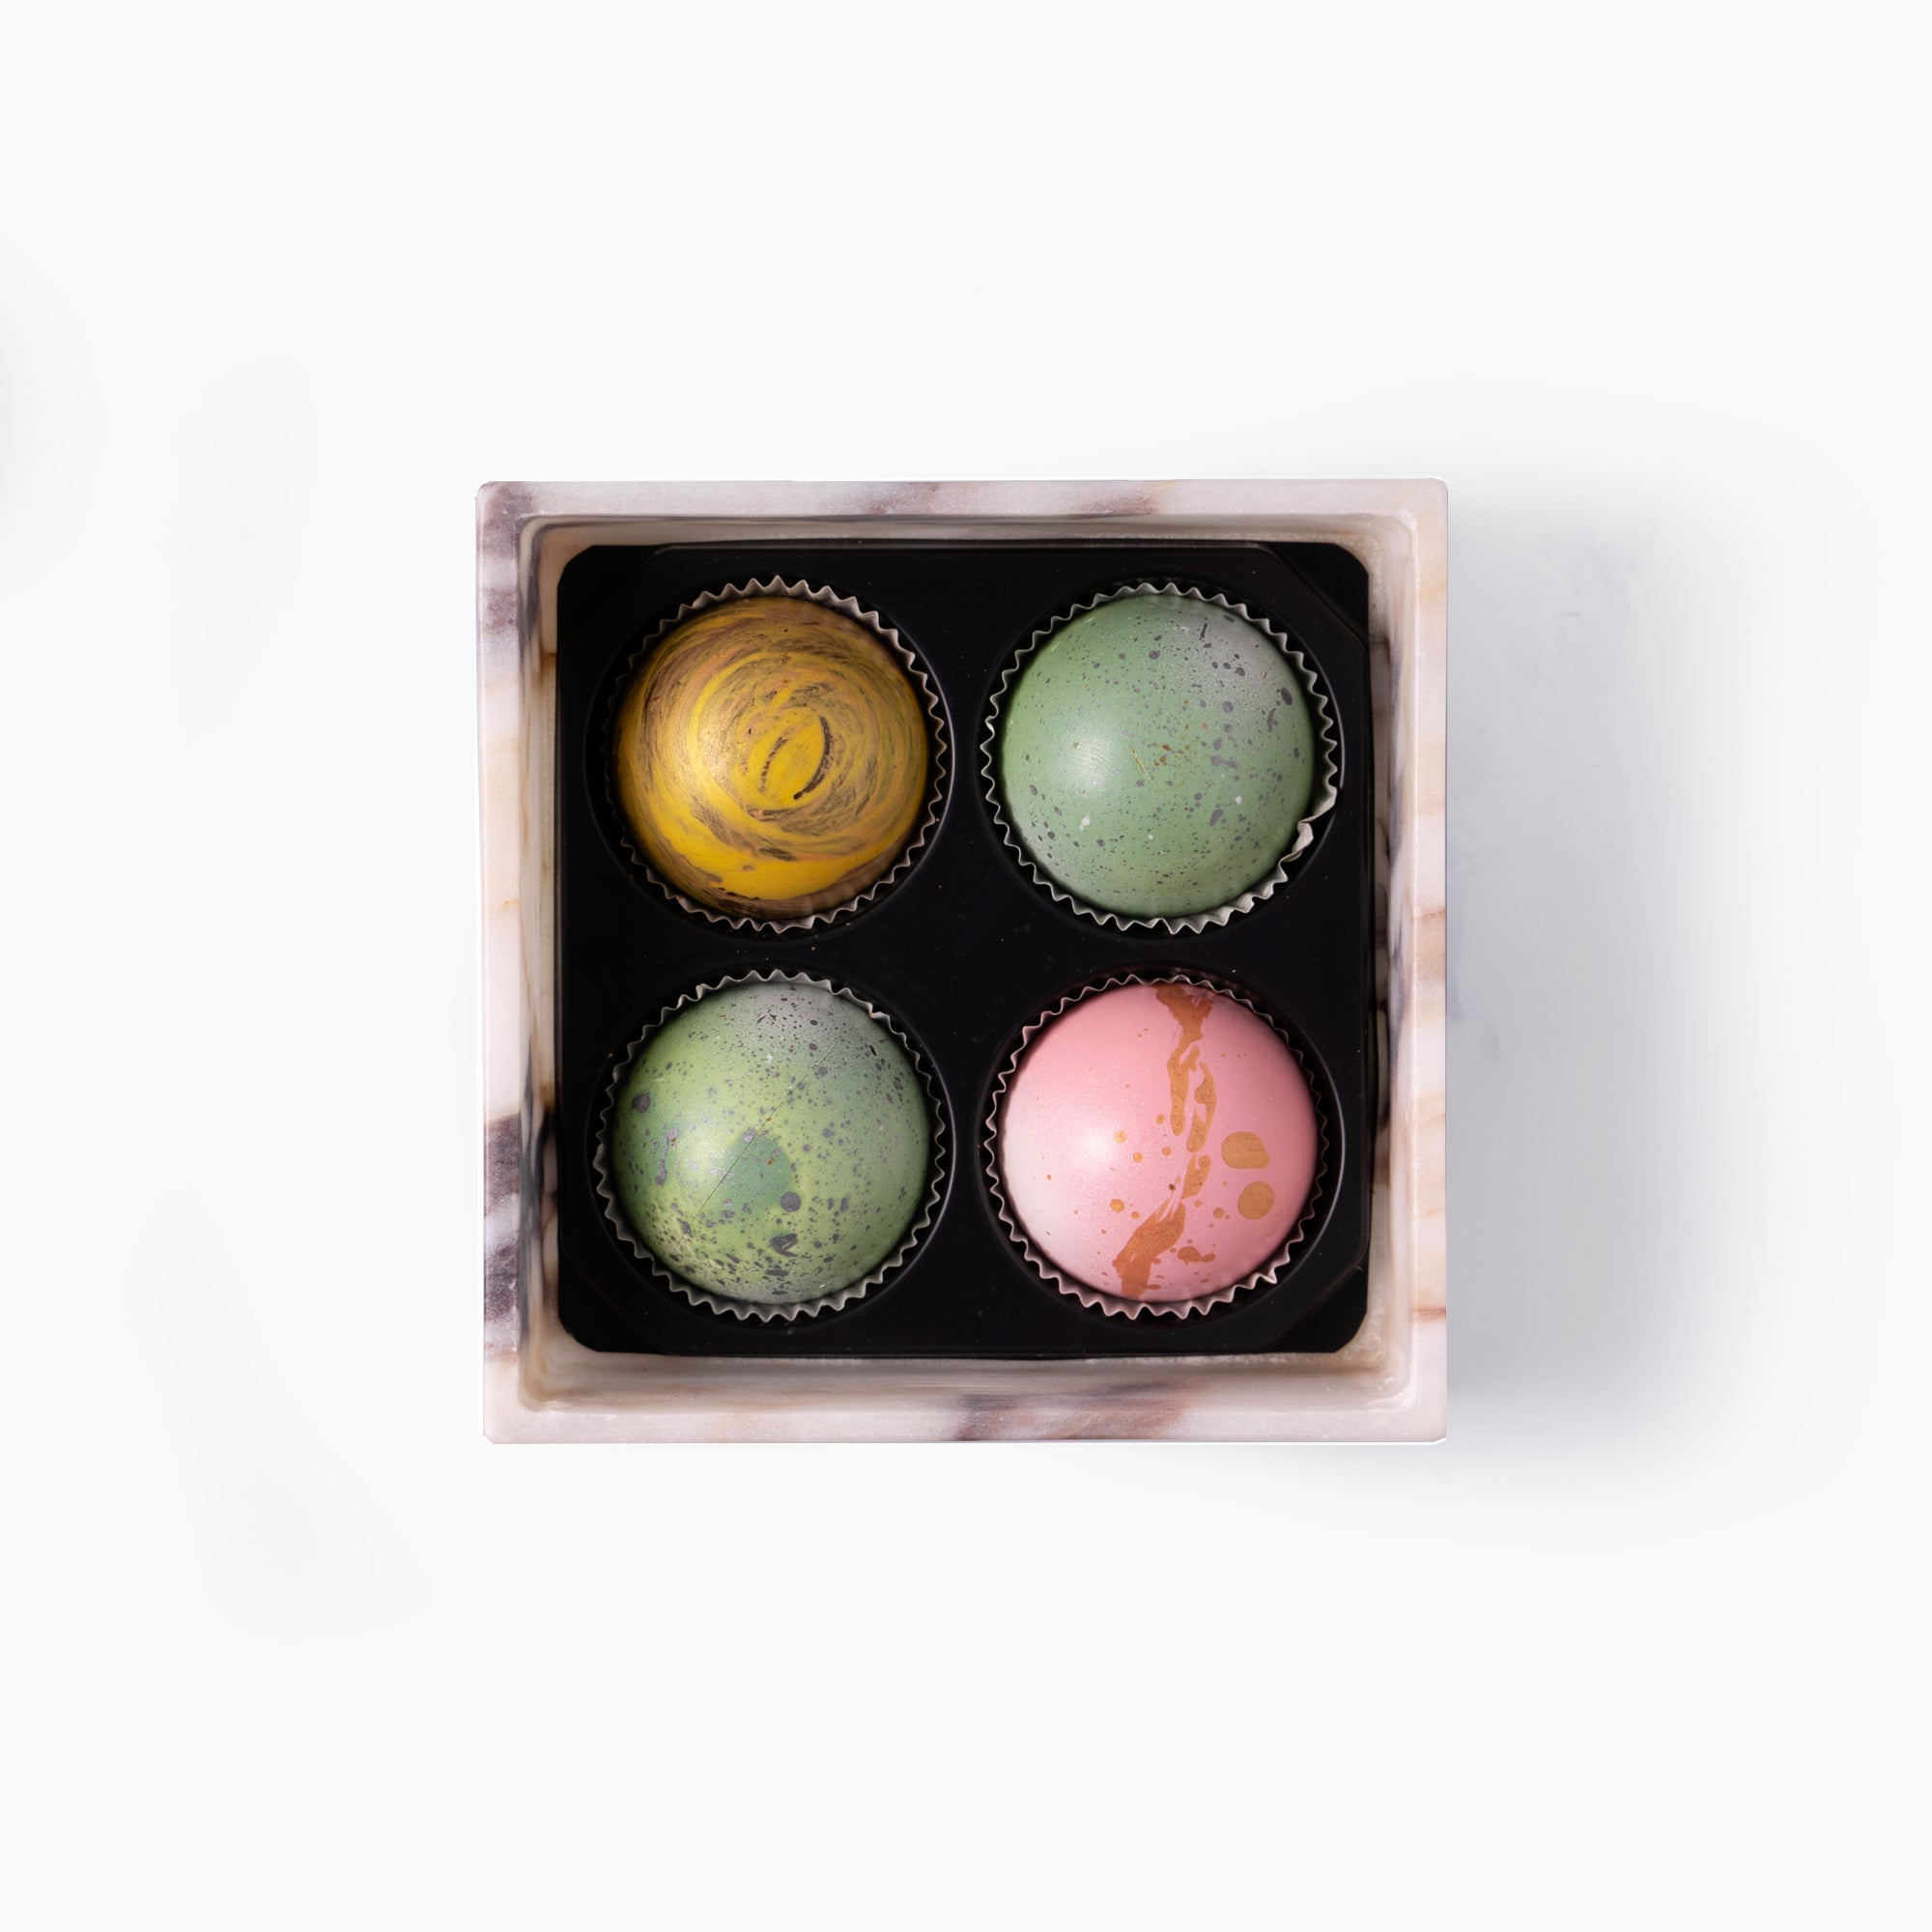 Marble Chocolate Truffle Box, 4 pc.